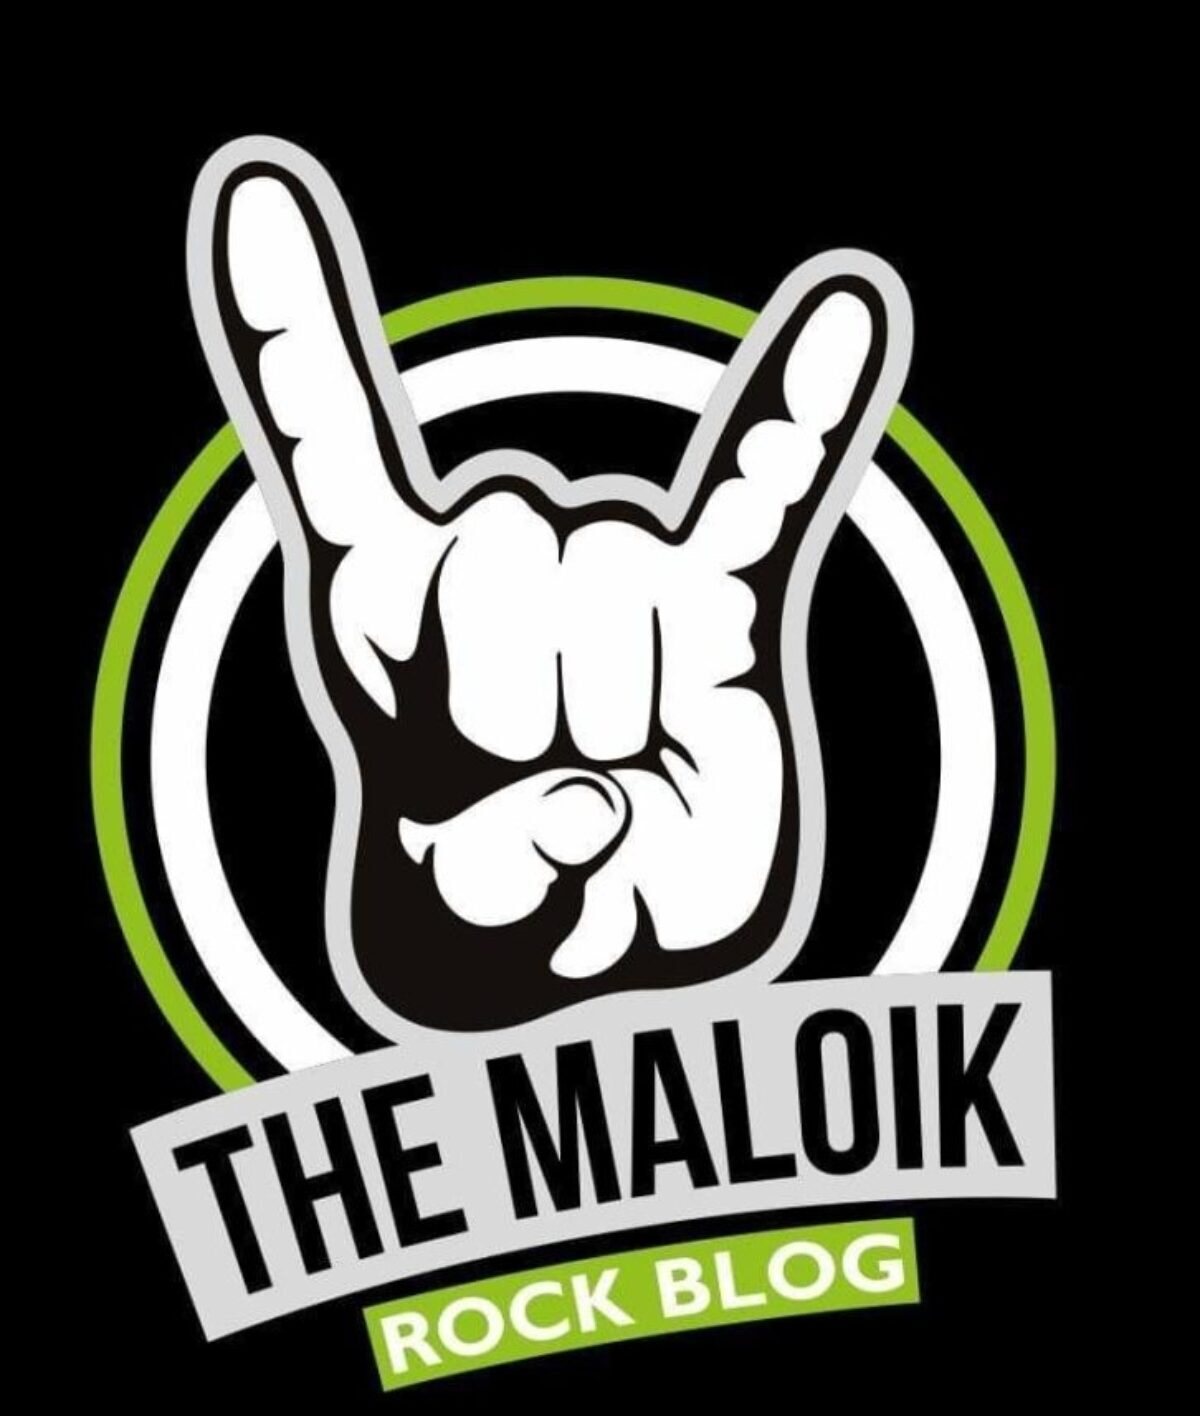 The Maloik Rock Blog